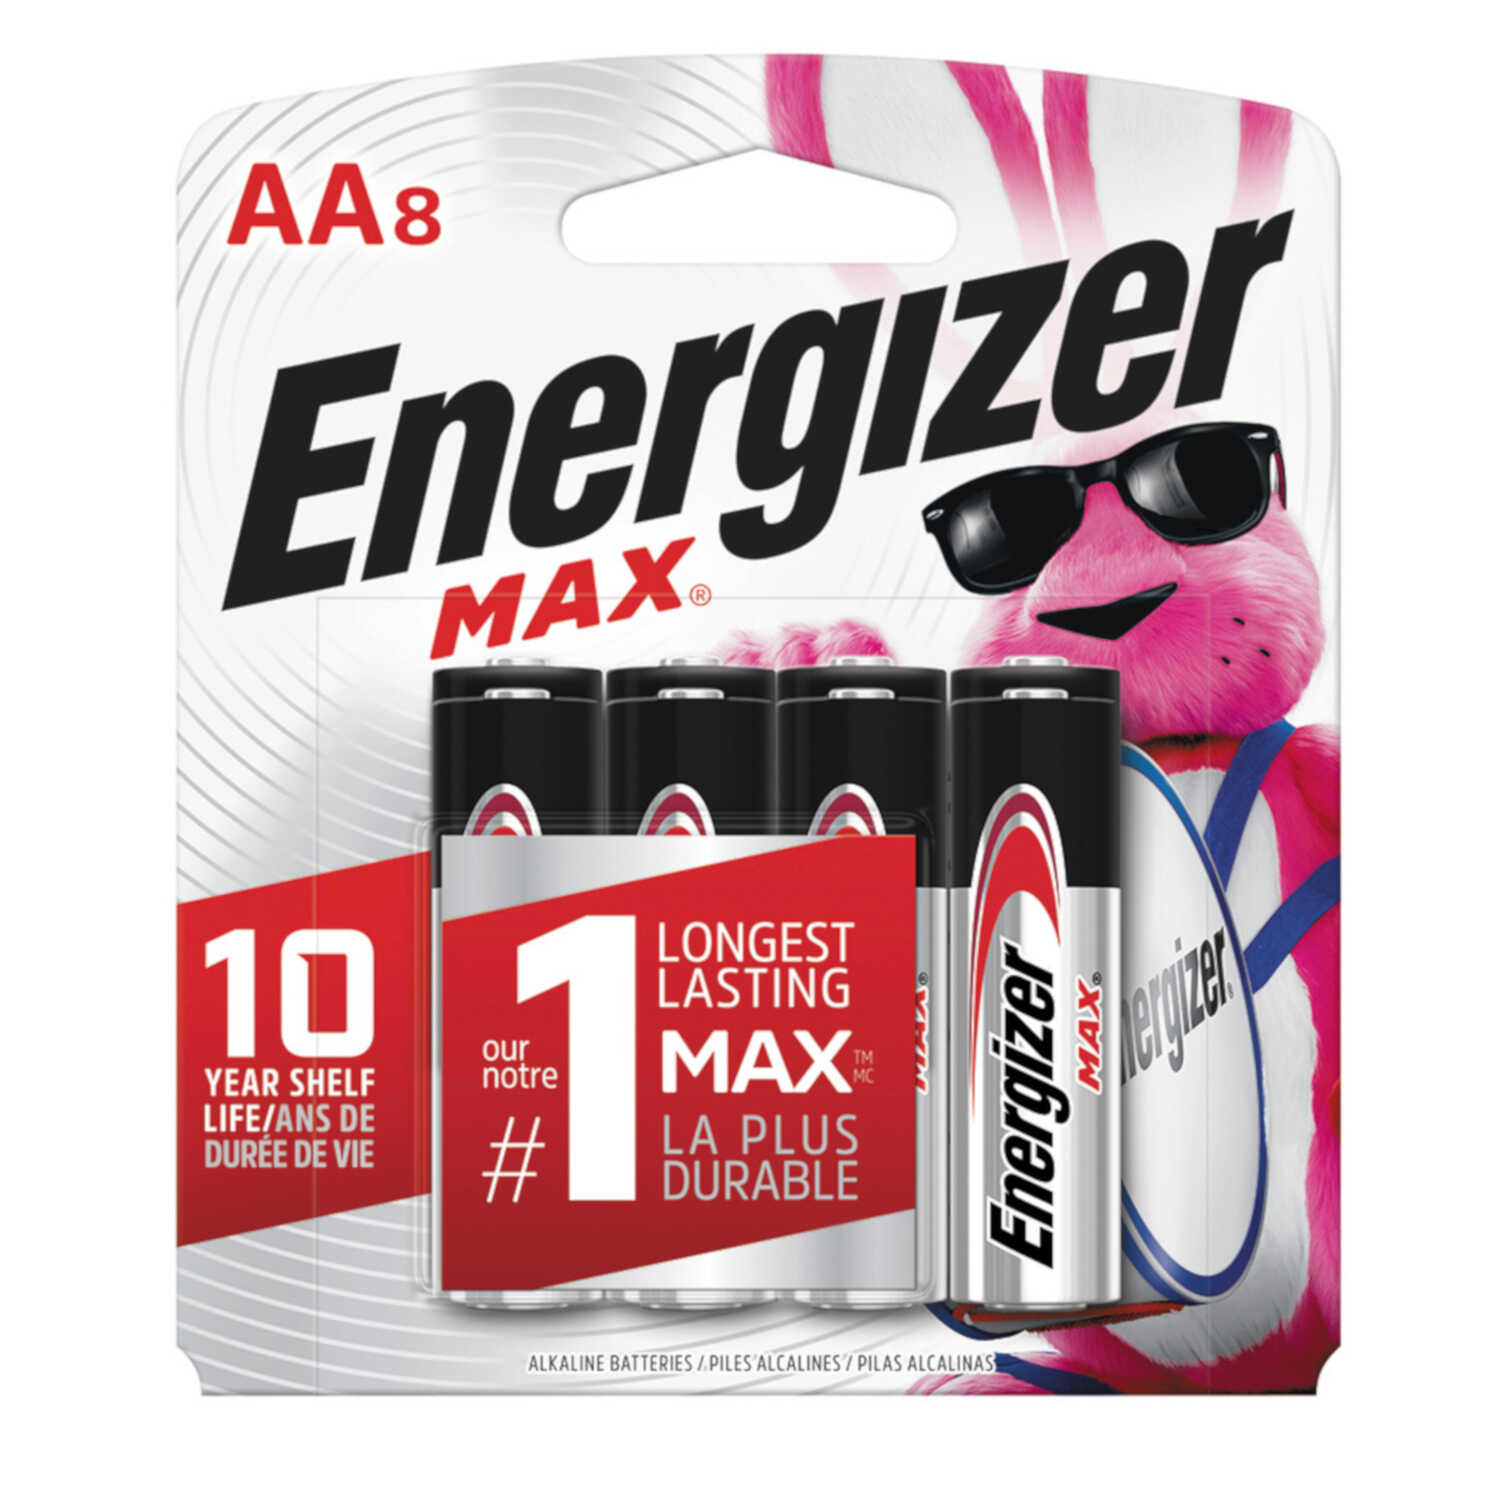 Energizer  MAX  AA  Alkaline  Batteries  8 pk Carded